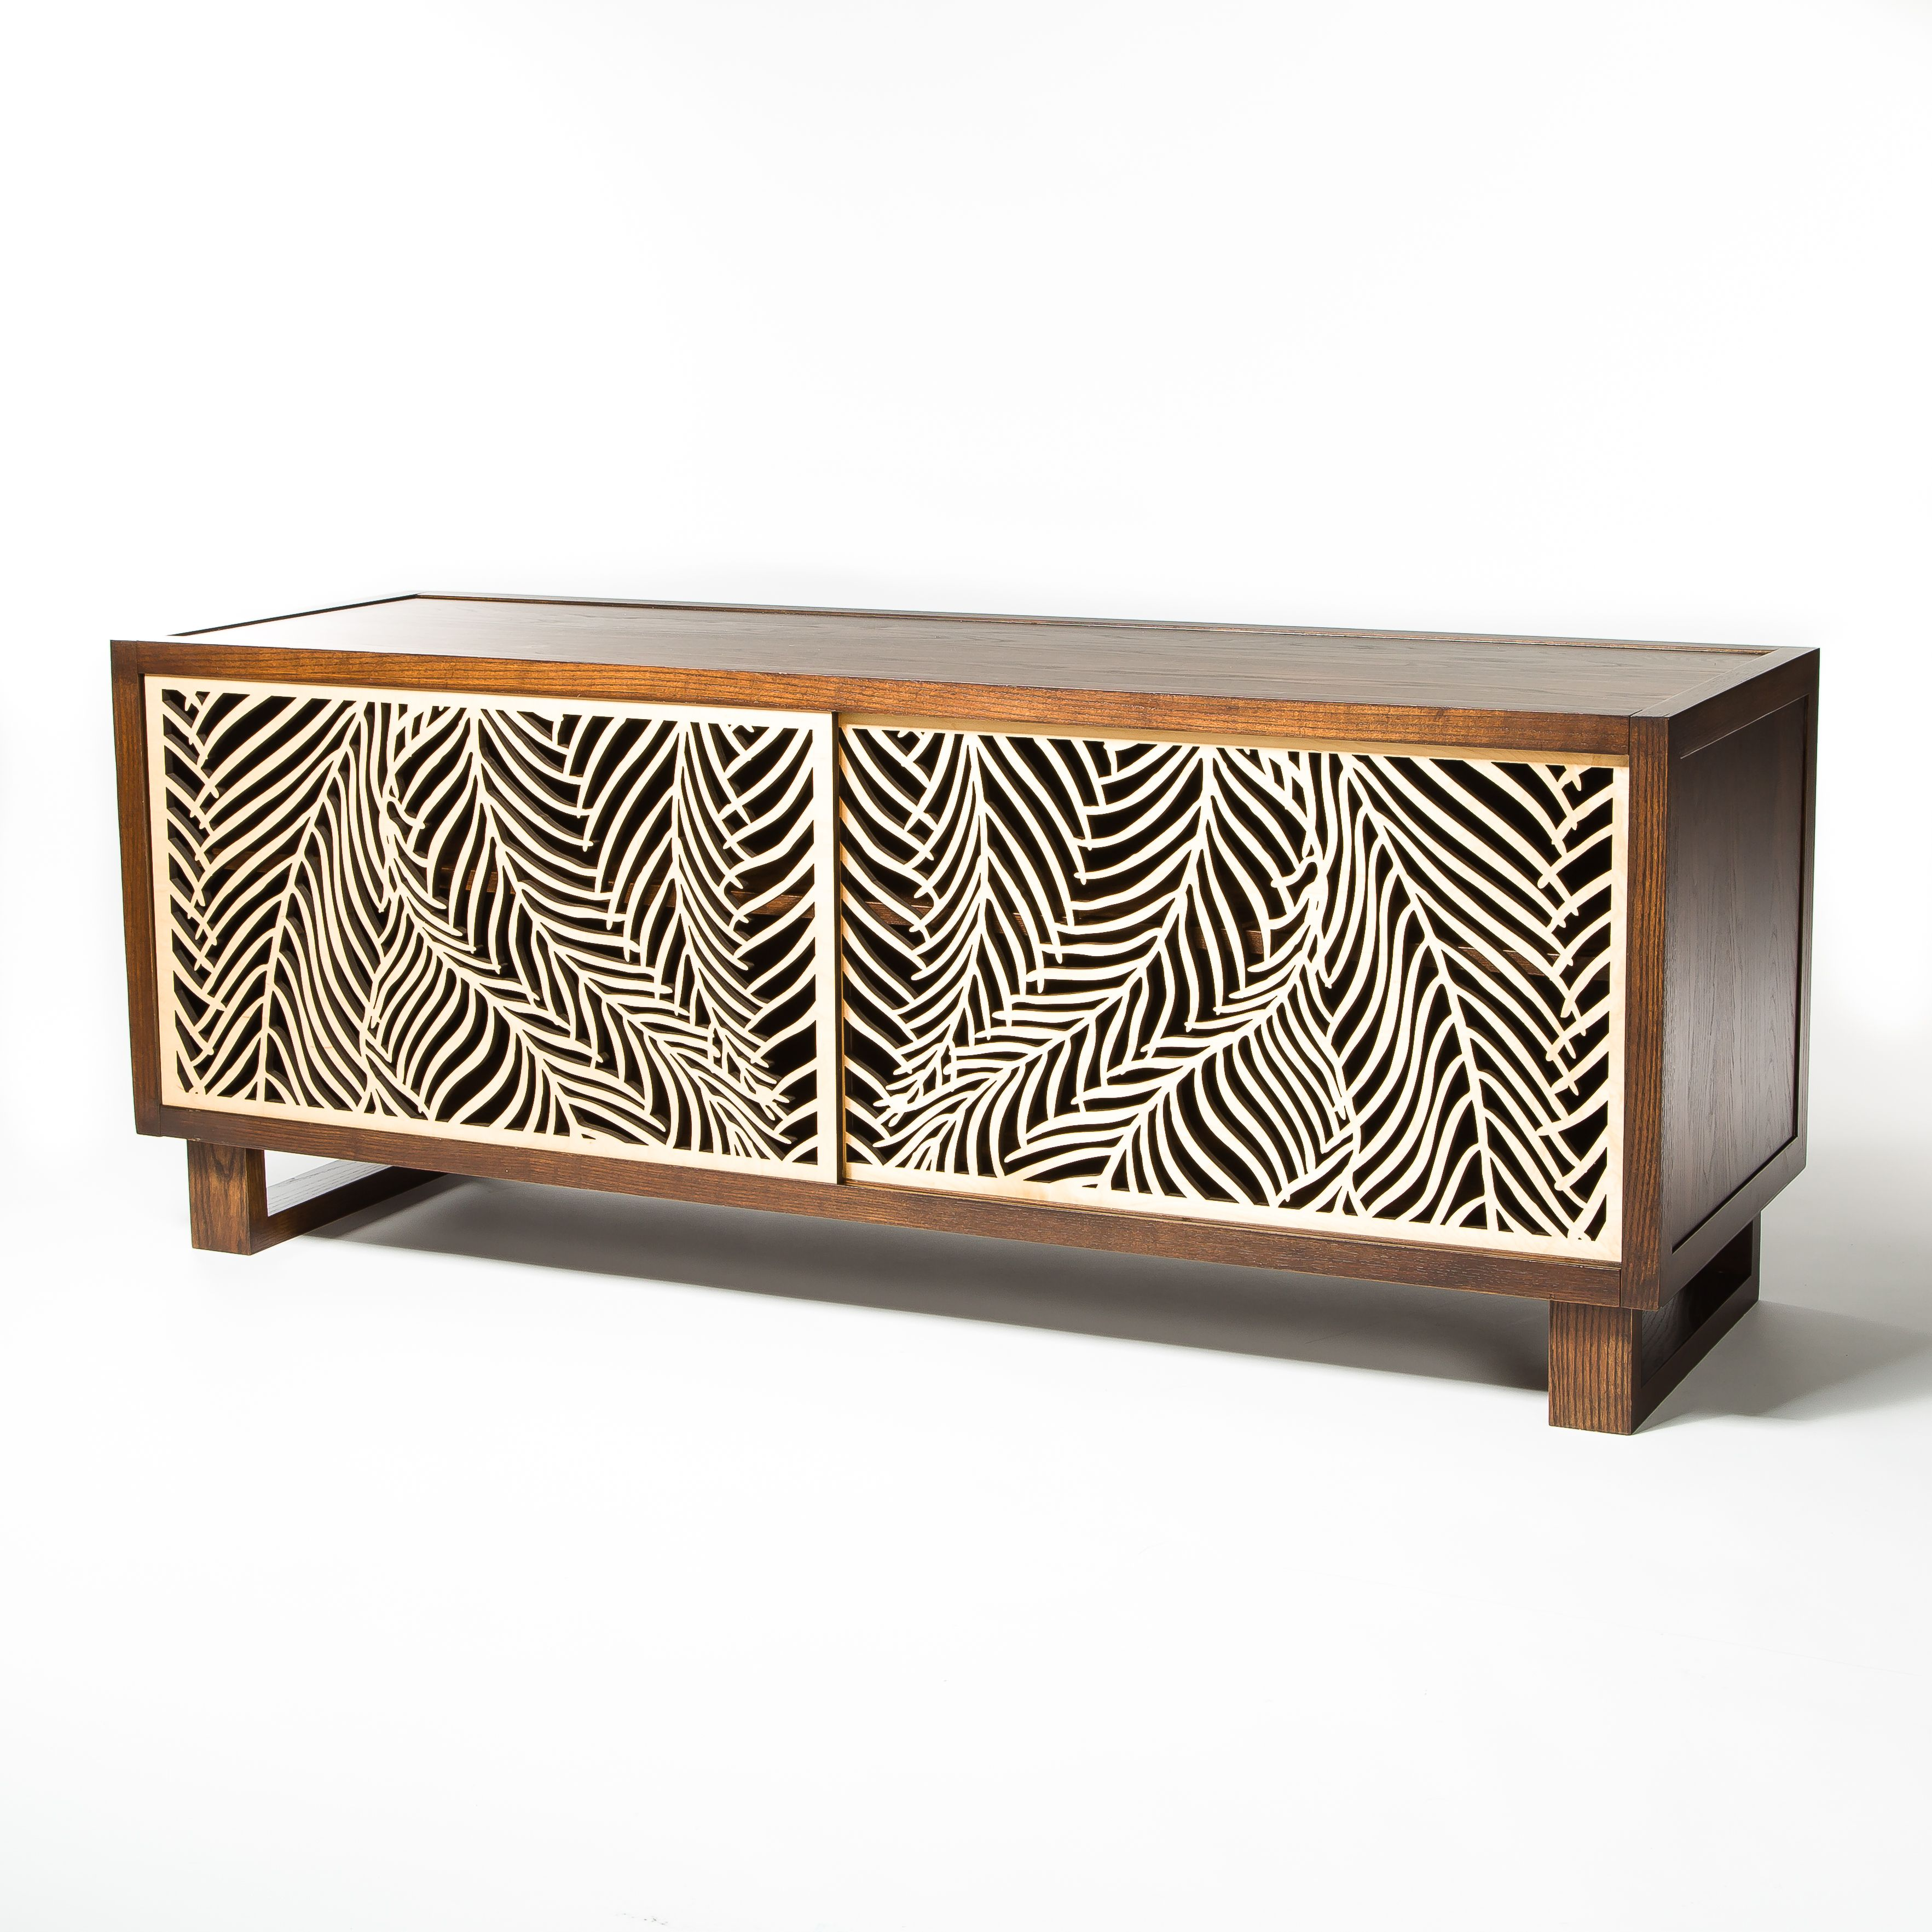 Beautiful Credenza Featuring Intricate Wispy Palm Laser